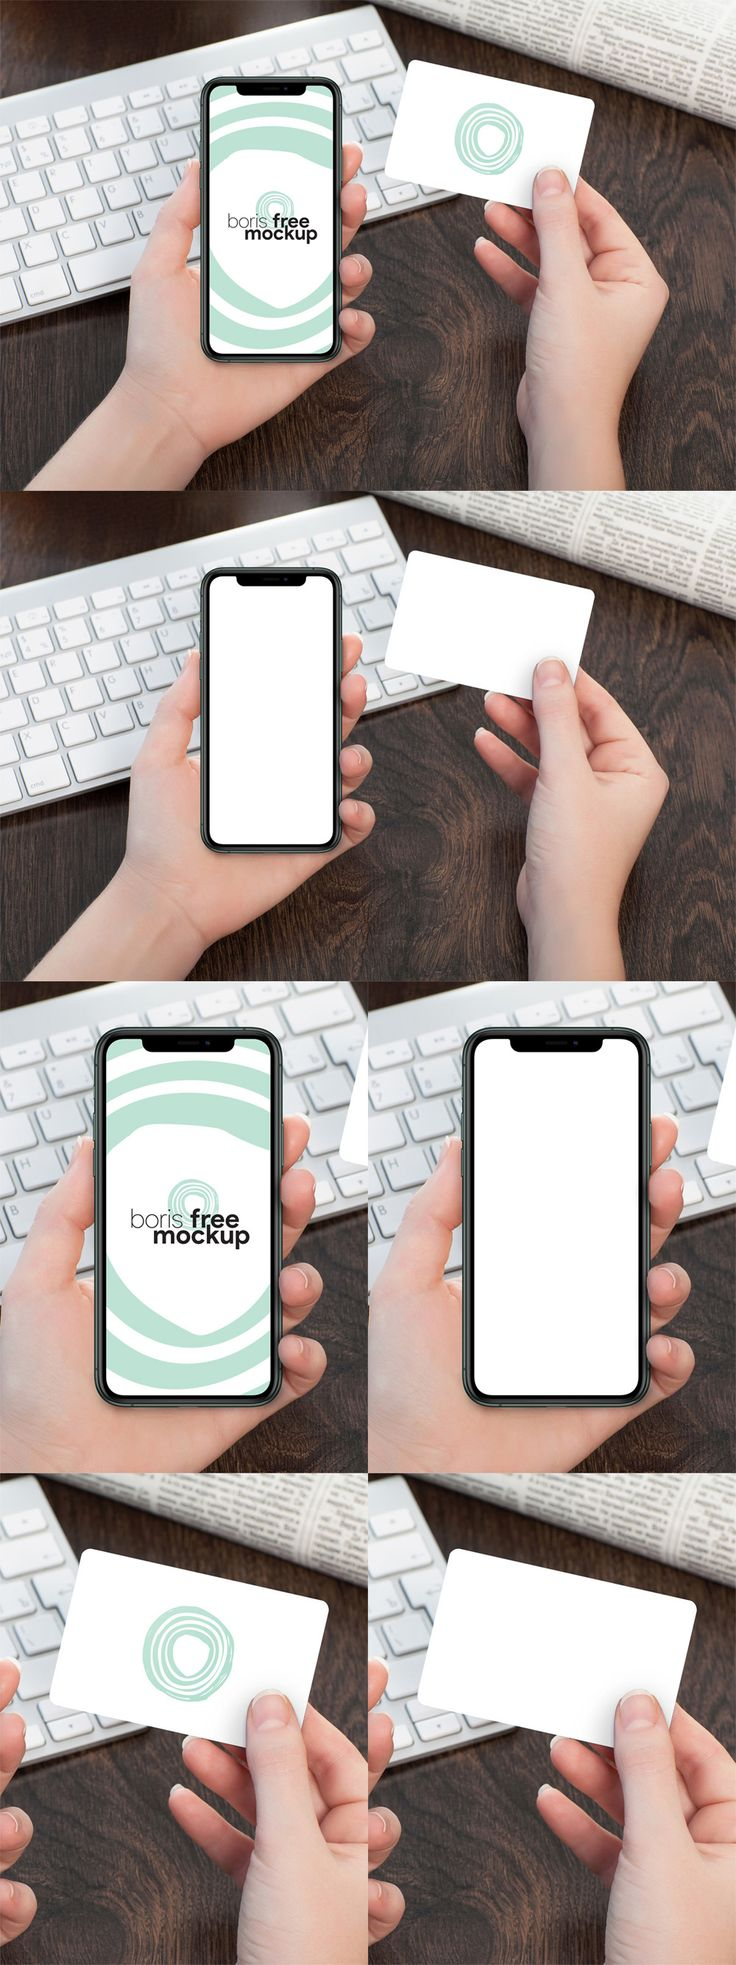 Free hand holding iphone 11 pro max credit card mockup